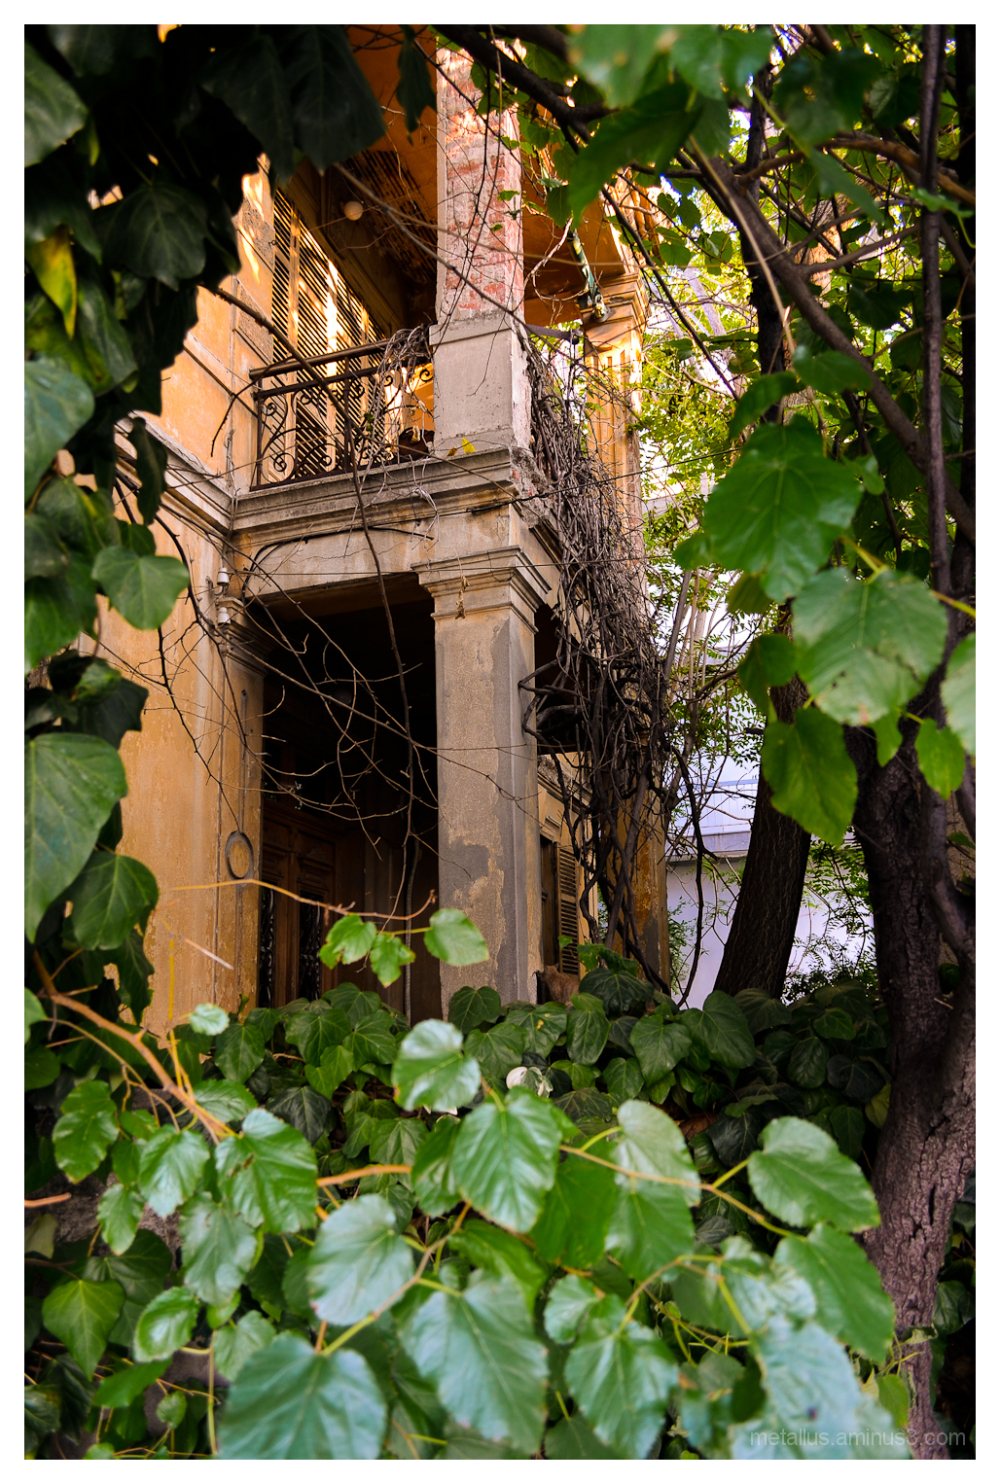 Abandoned house at Thessaloniki, Greece 2012